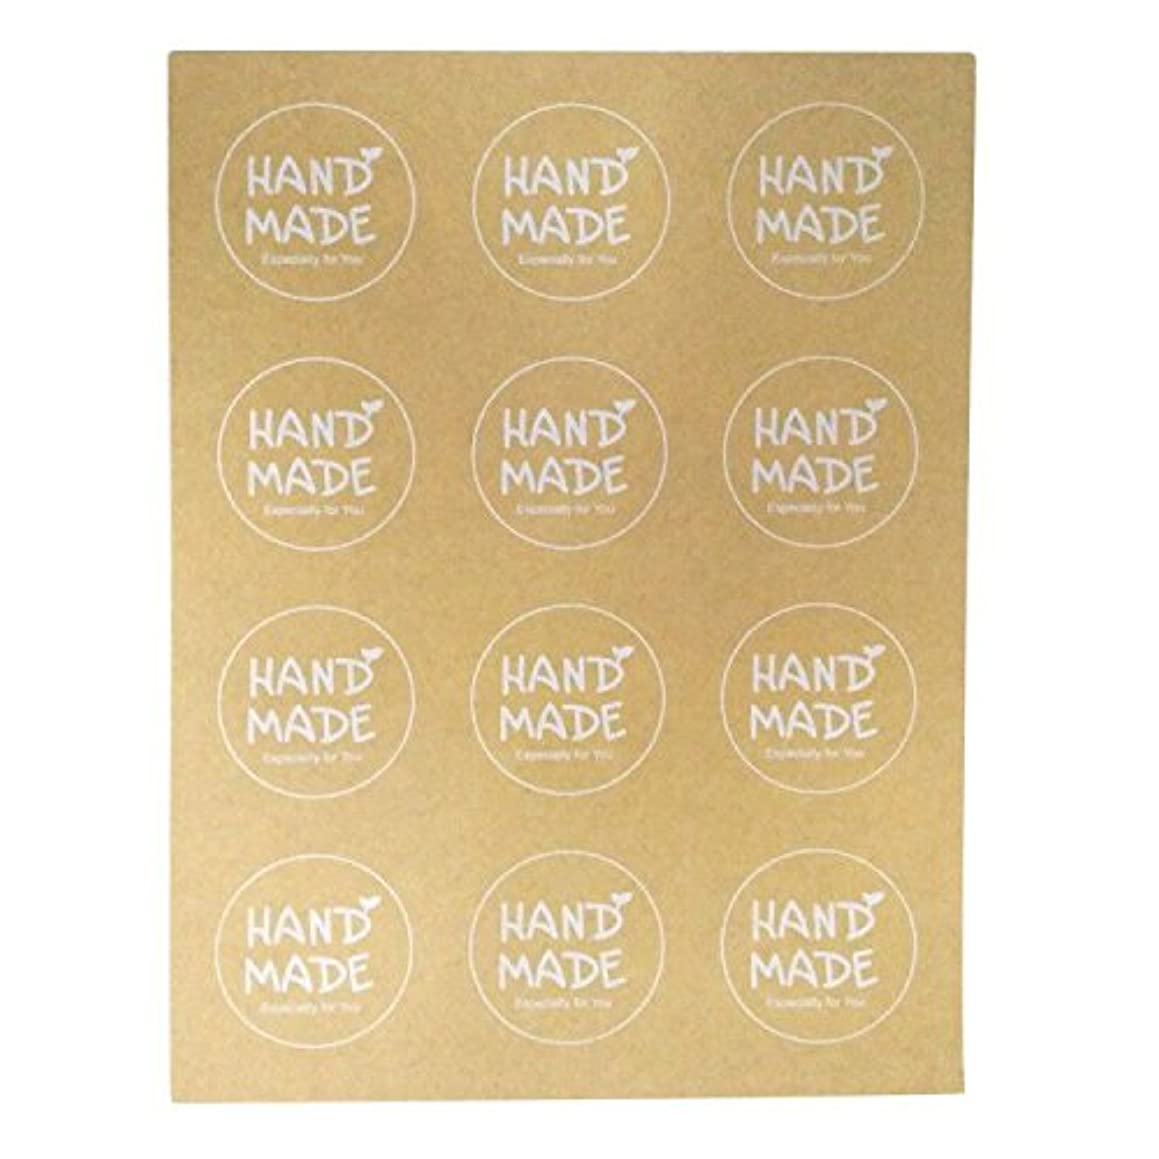 Handmade Stickers, G2PLUS Handmade Especially for You Kraft Paper Sticker Labels for Soap, Baking, DIY Gift Packaging (10 Sheets x 12 PCS)